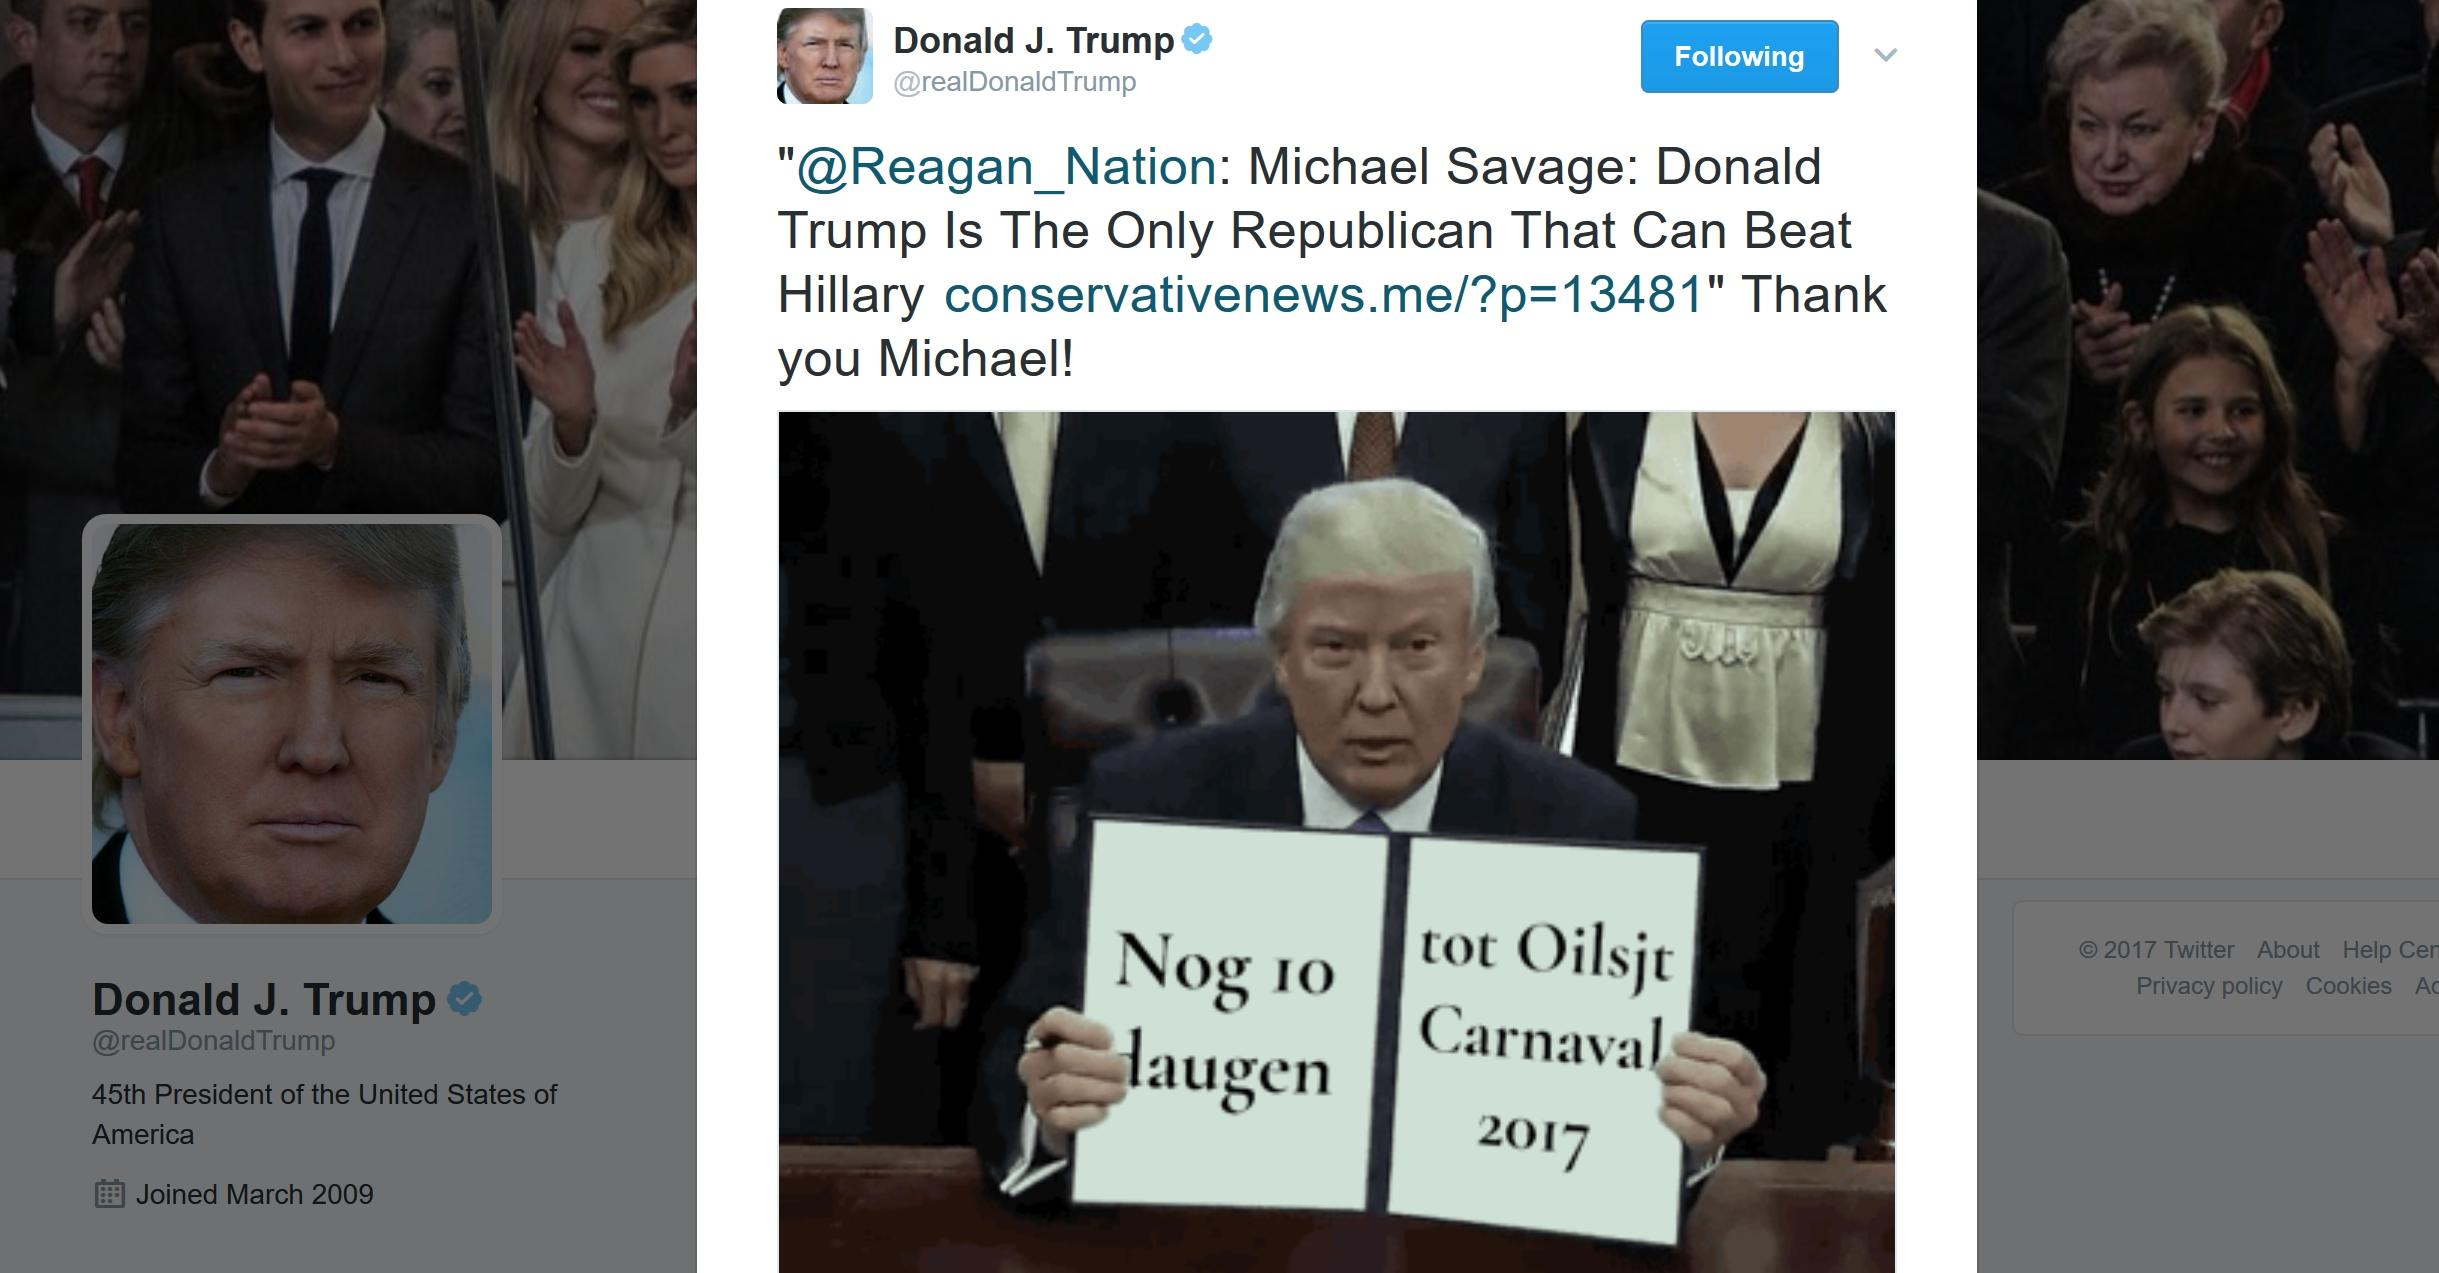 Did Donald Trump Just Tweet an Animated GIF of Himself? Yes He Did, Sort Of...